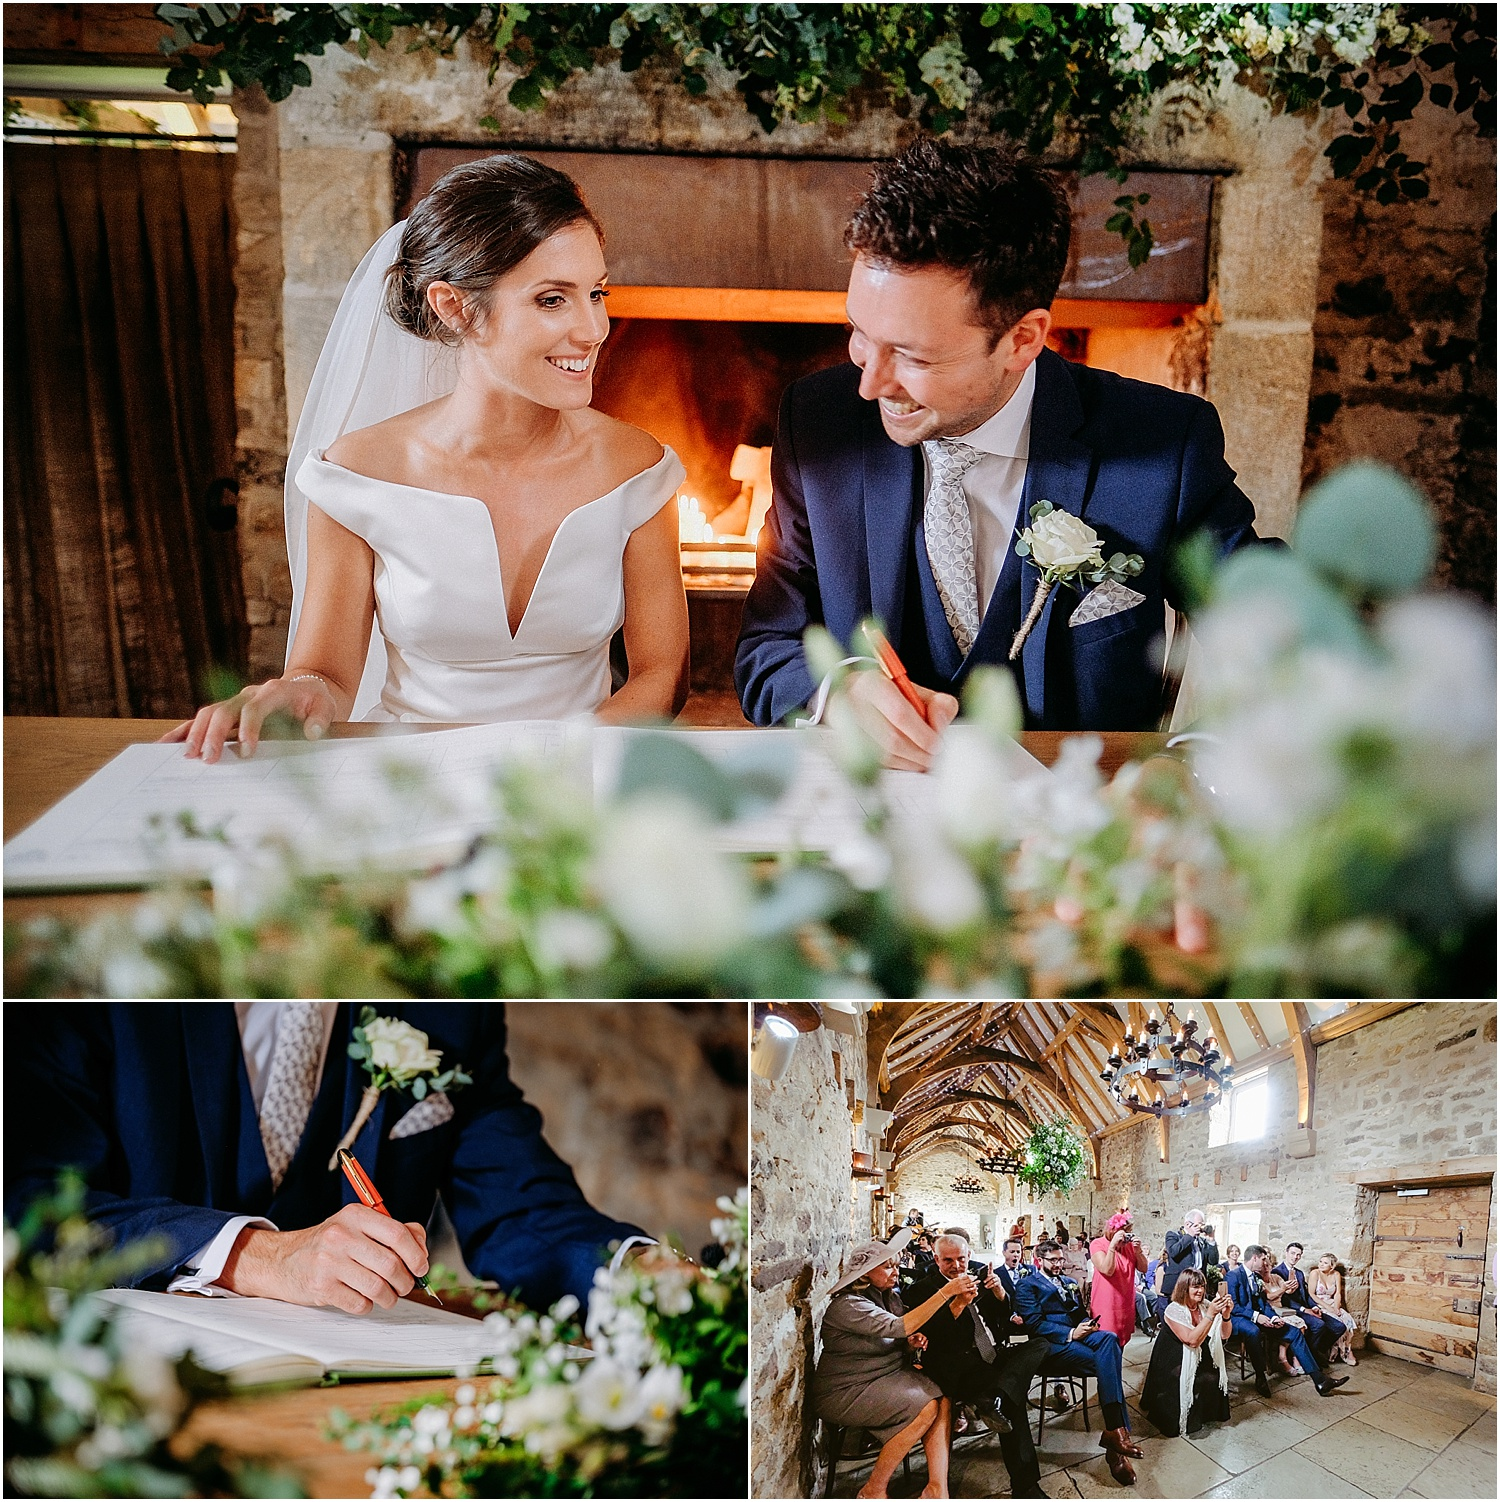 Healey Barn summer wedding photography by www.2tonephotography.co.uk 066.jpg